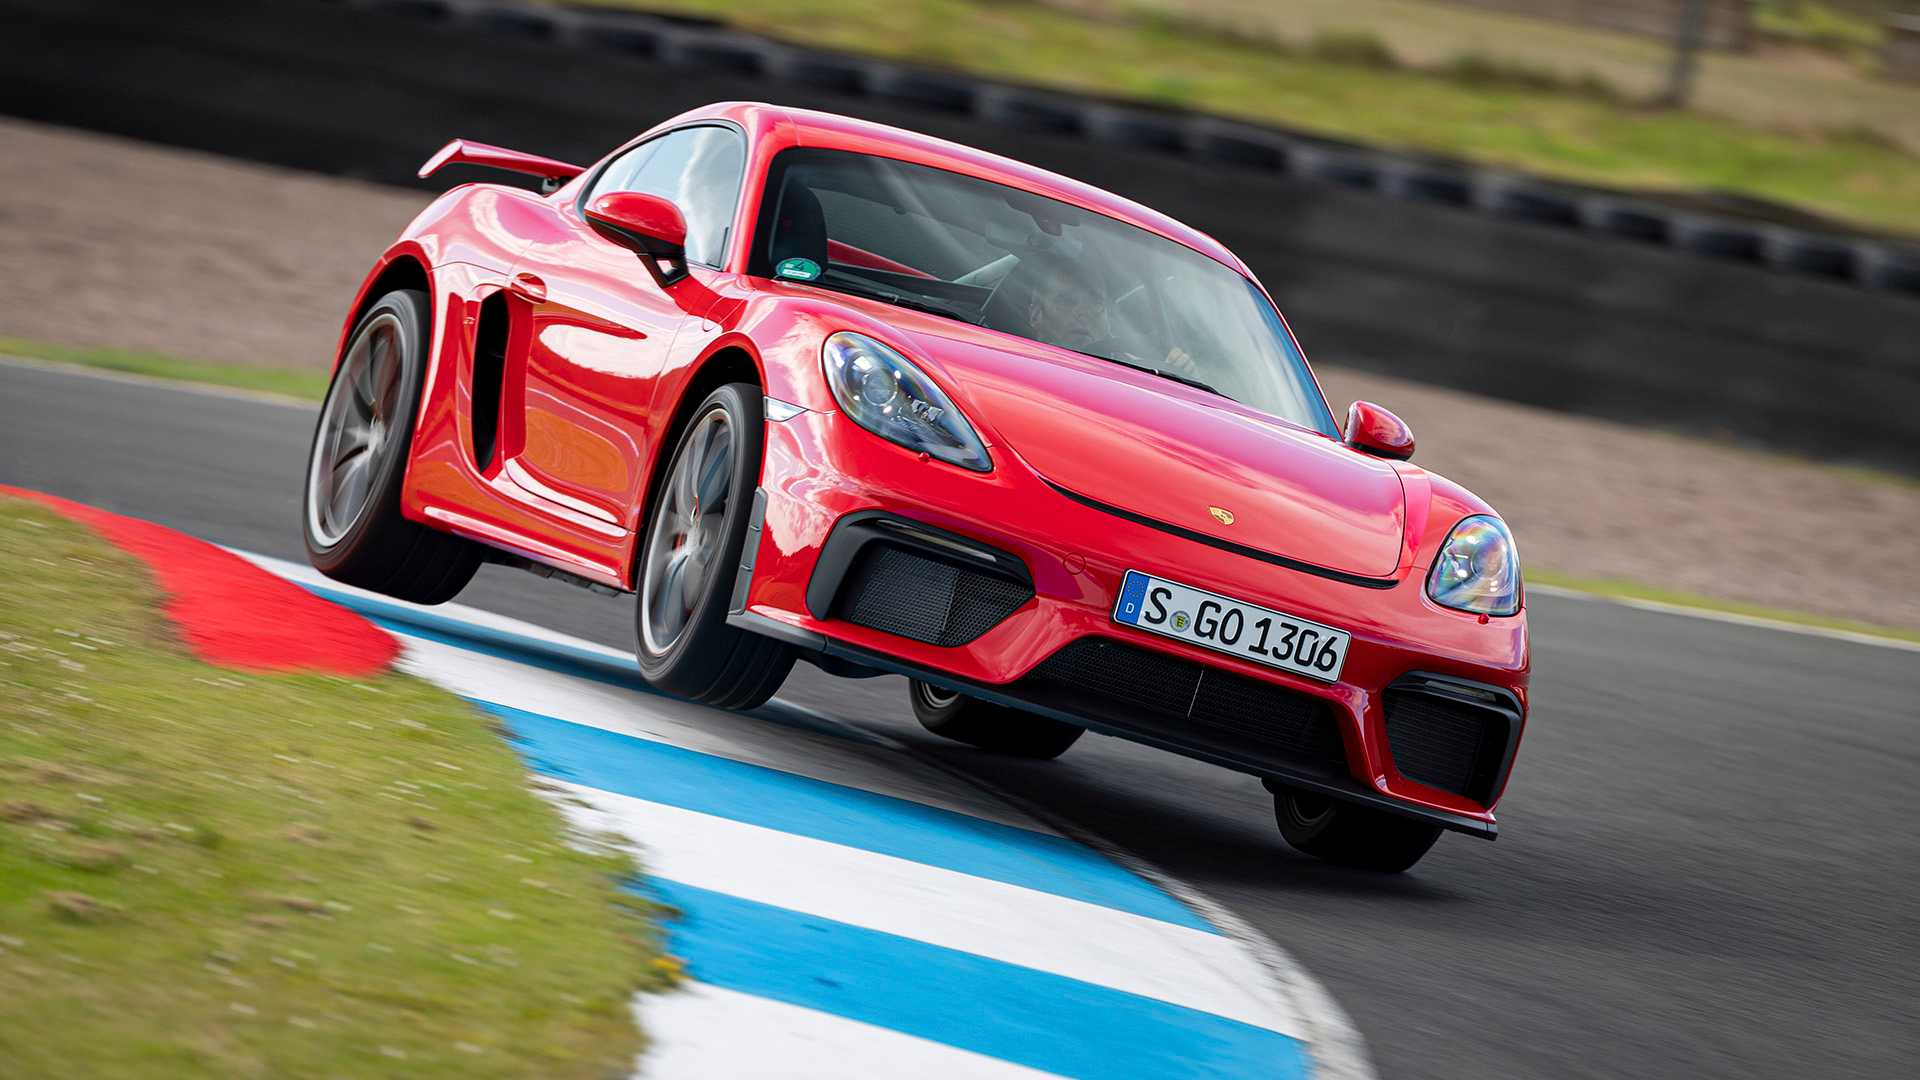 2020 Porsche Cayman Price, Design and Review